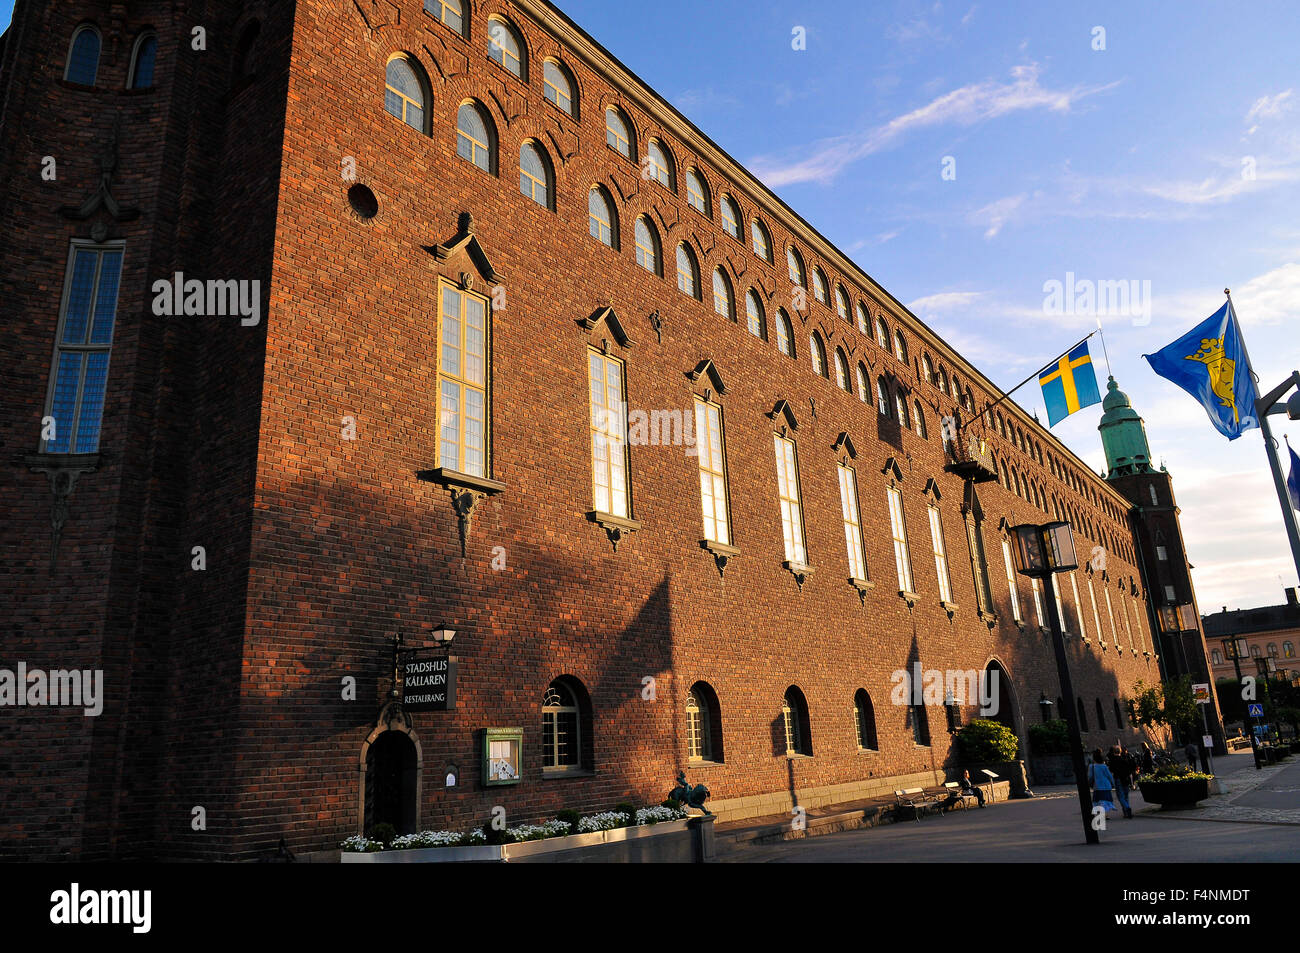 Svezia Stoccolma Stadshuset Il municipio Sweden Stockholm Stadhuset or Town Hall - Stock Image